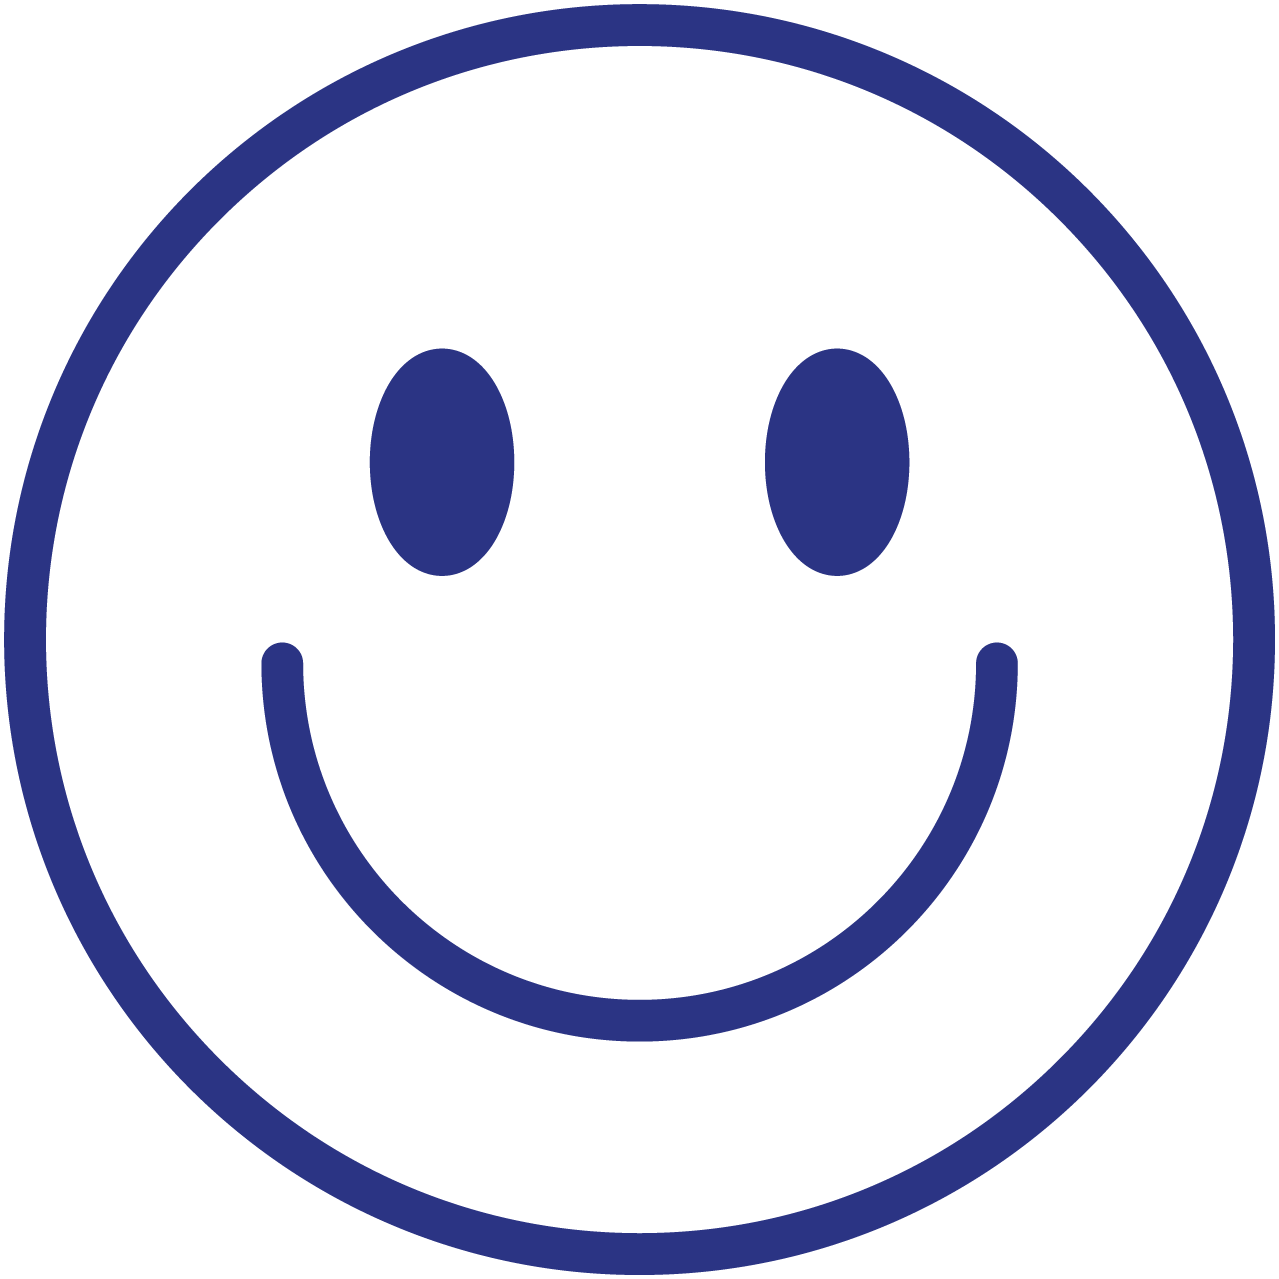 A smiley face which represents how fun shopping can be